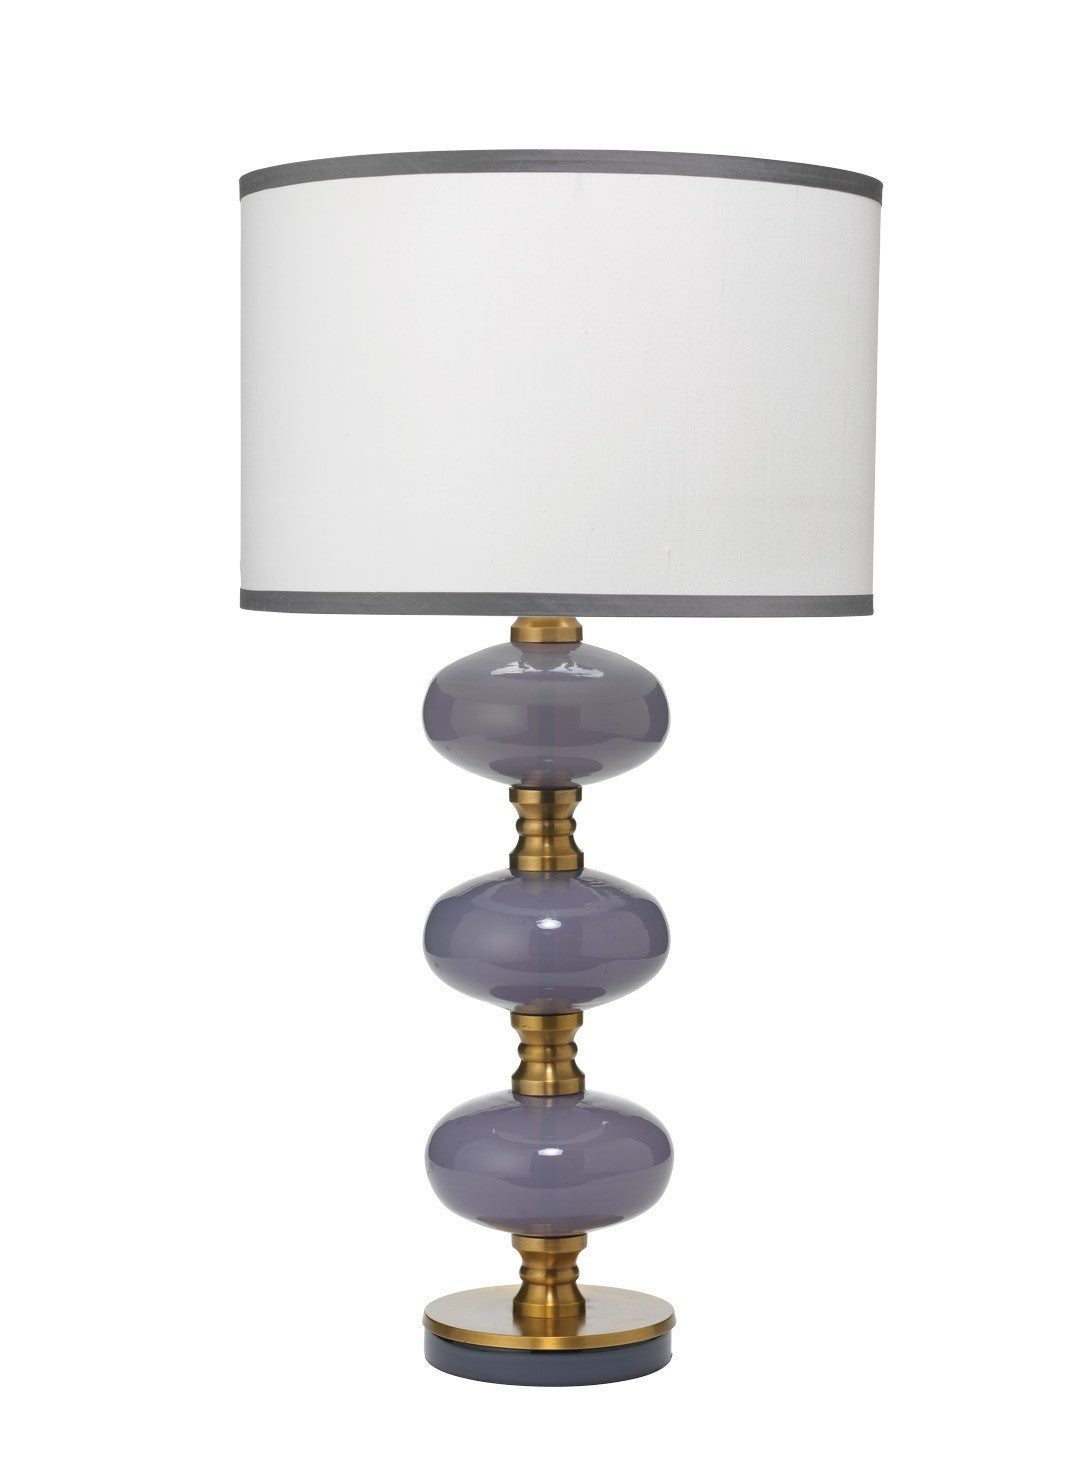 Stockholm table lamp jamie young luxe home philadelphia stockholm table lamp jamie young geotapseo Gallery